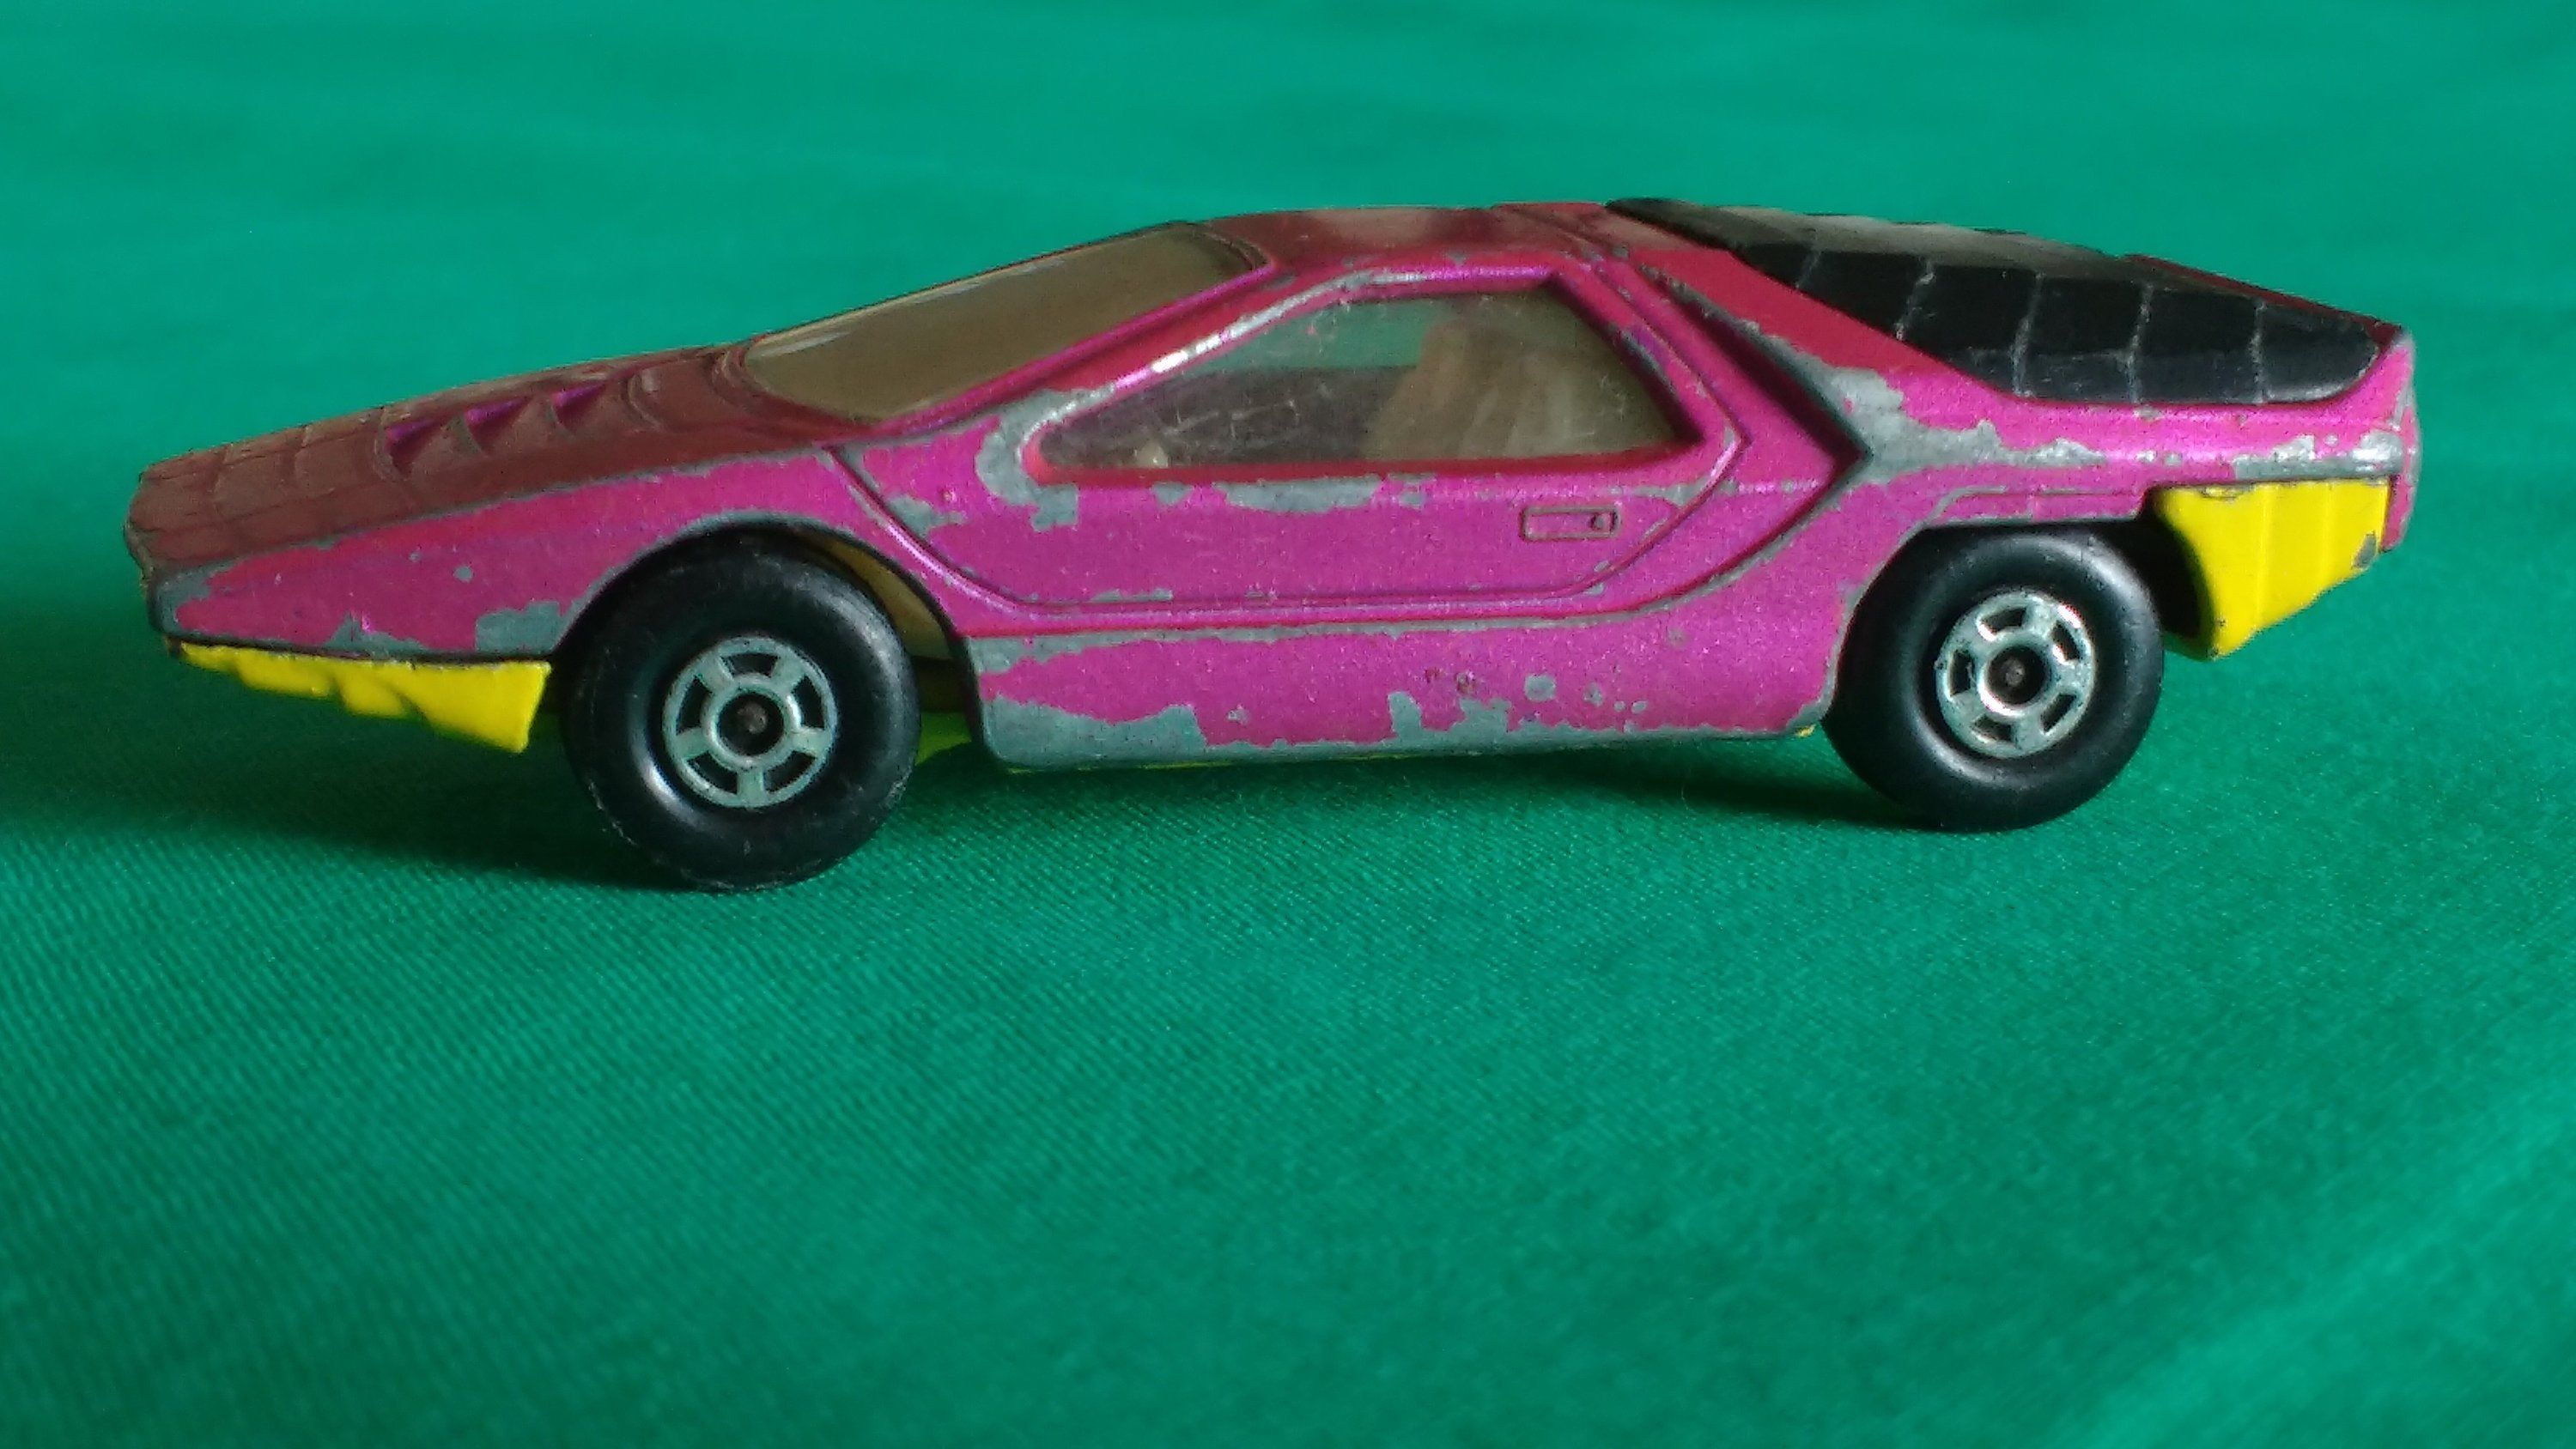 Alfa Carabo Lesney Matchbox Superfast No 75 In 2020 Matchbox Cars Matchbox Toy Collection